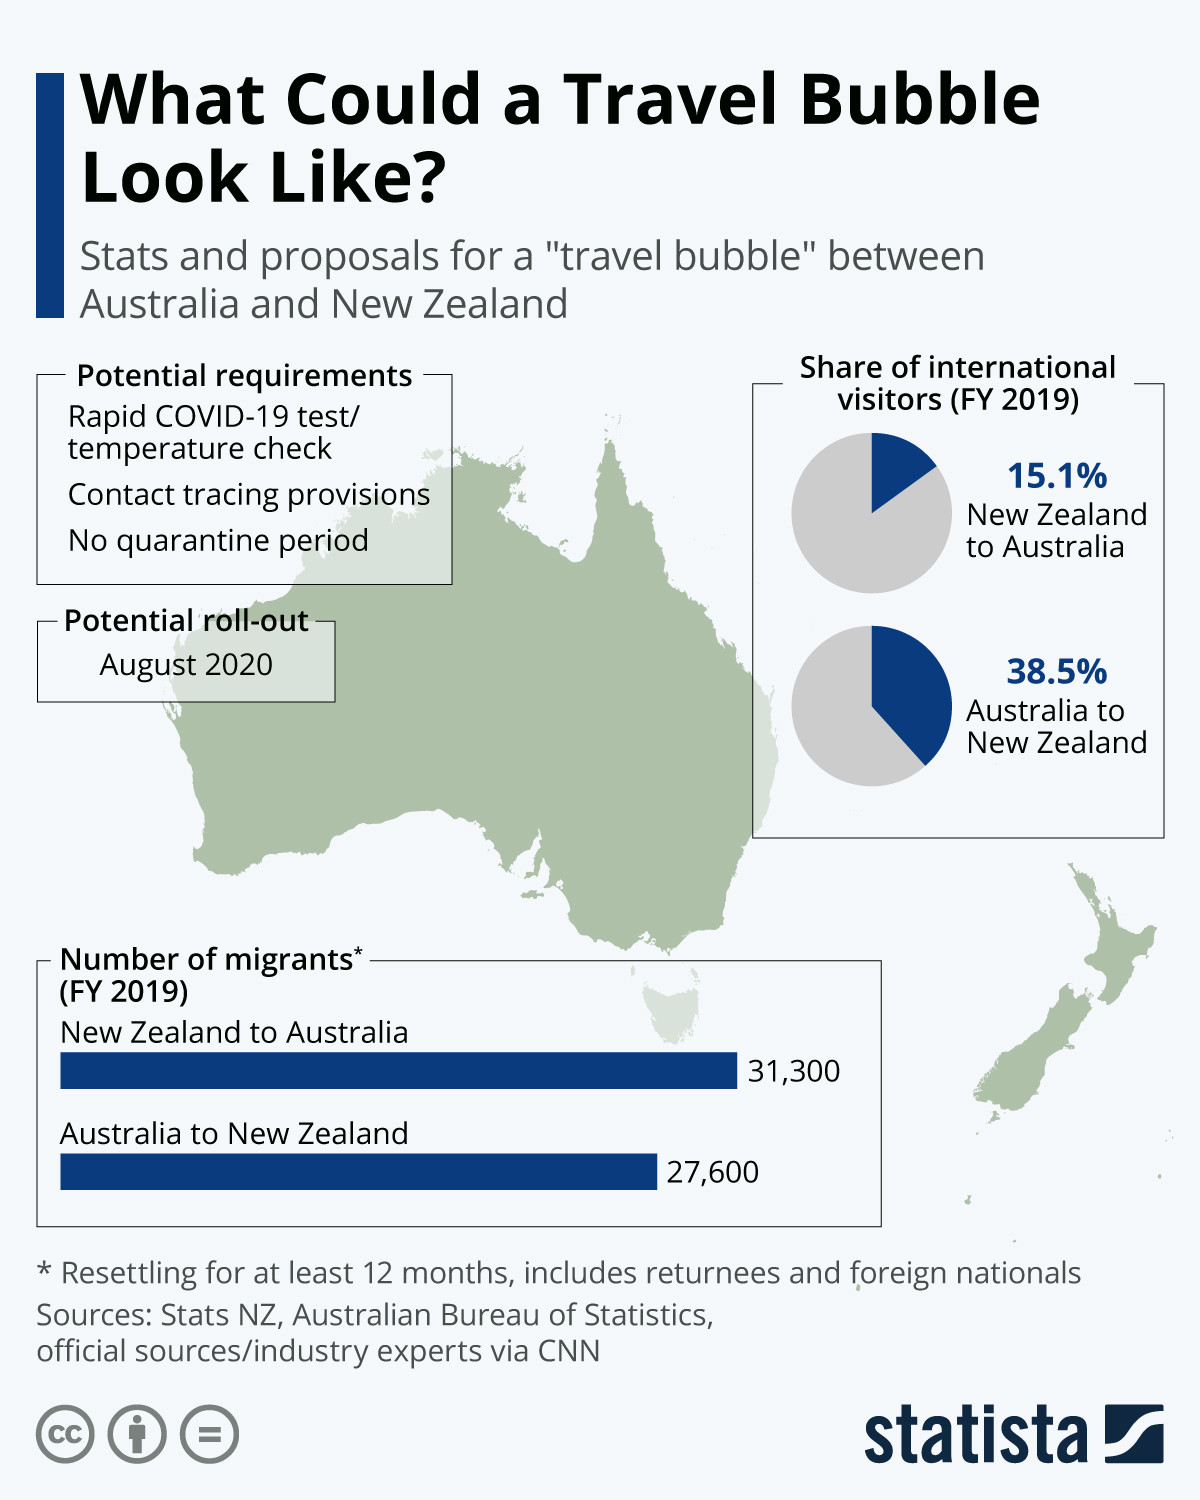 What could a travel bubble look like?